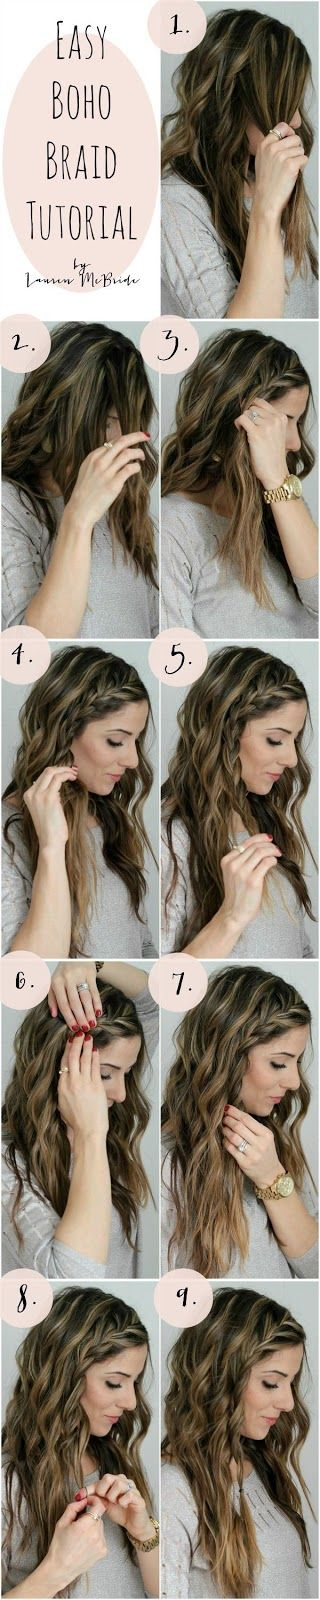 Remarkable 1000 Ideas About Braiding Your Own Hair On Pinterest How To Short Hairstyles Gunalazisus